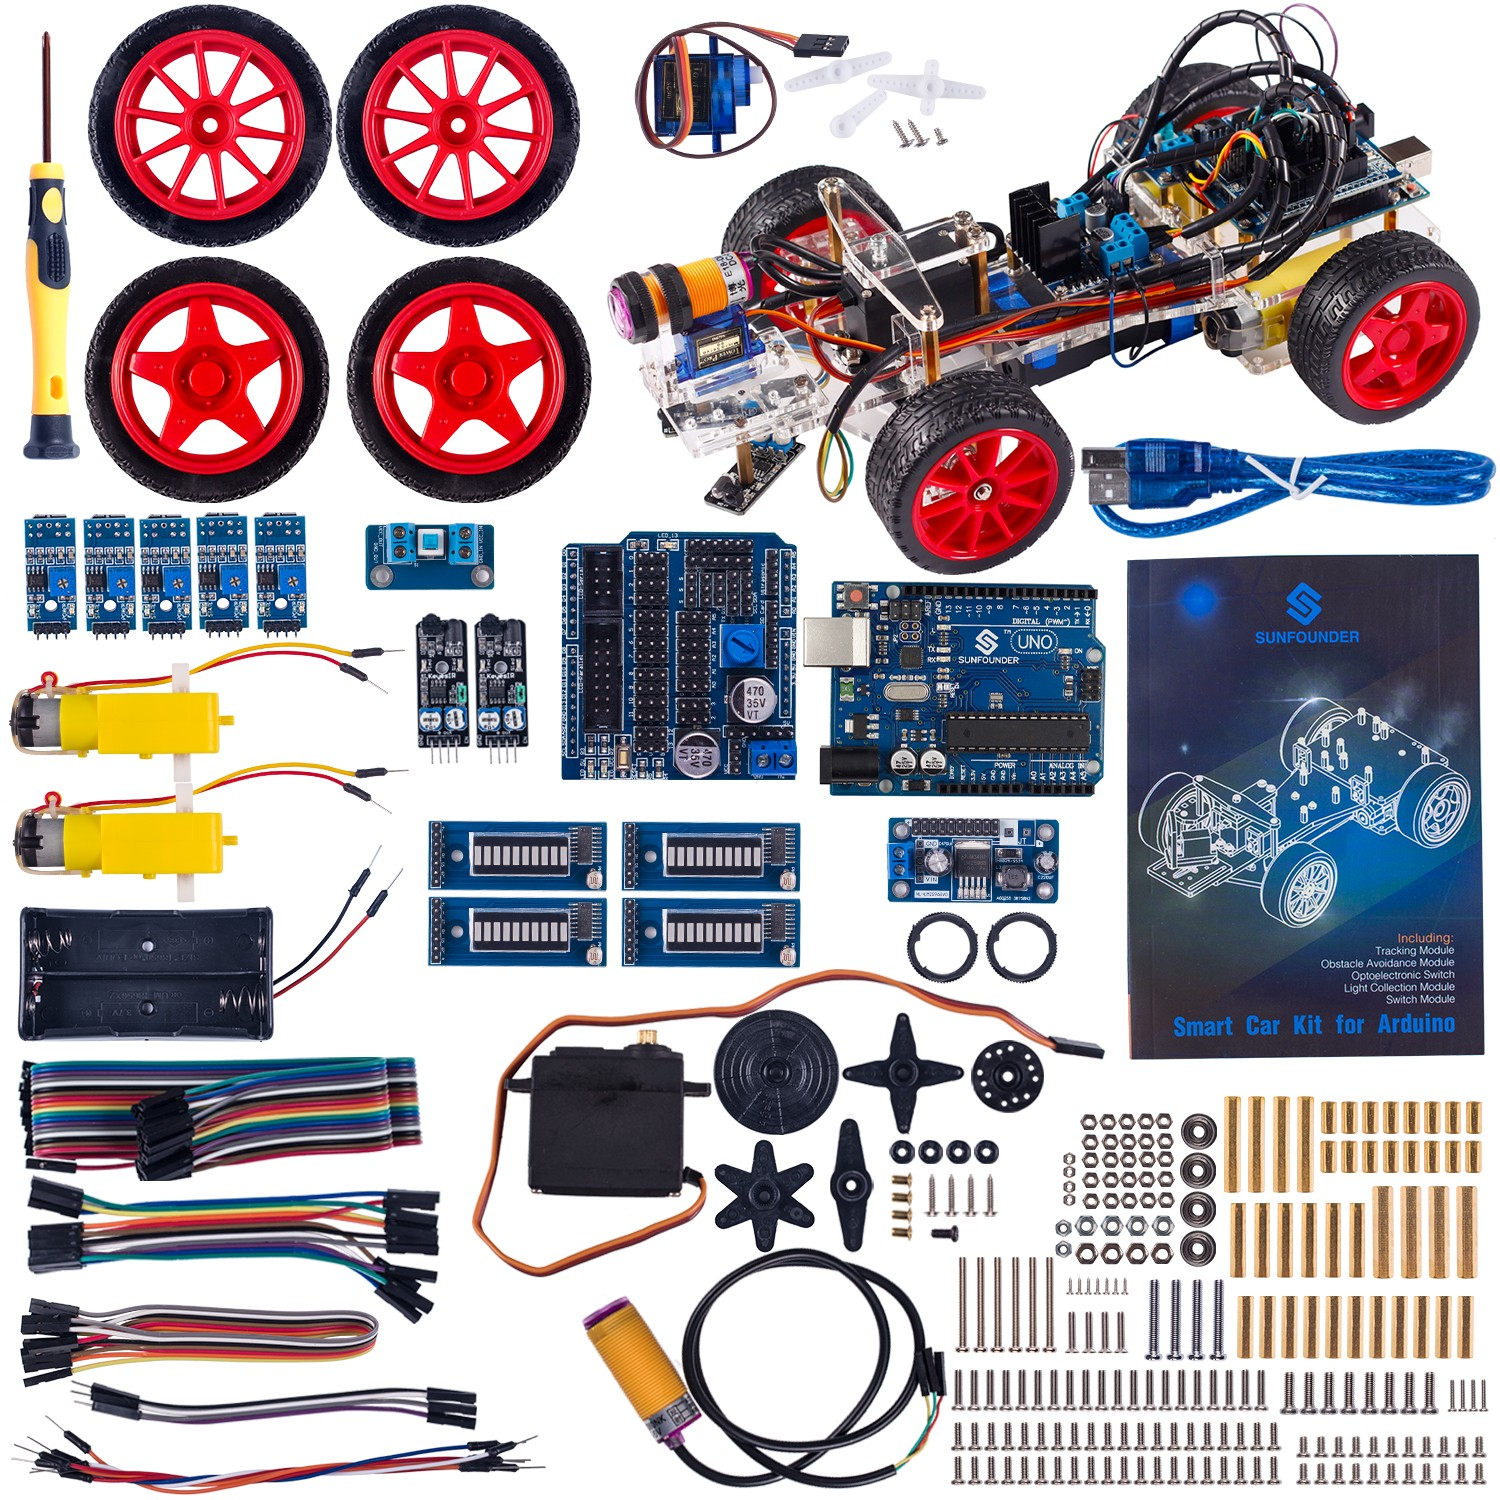 Smart Car Kit for Arduino with Uno R3, Obstacle Avoiding, Line Tracing and  Light Seeking